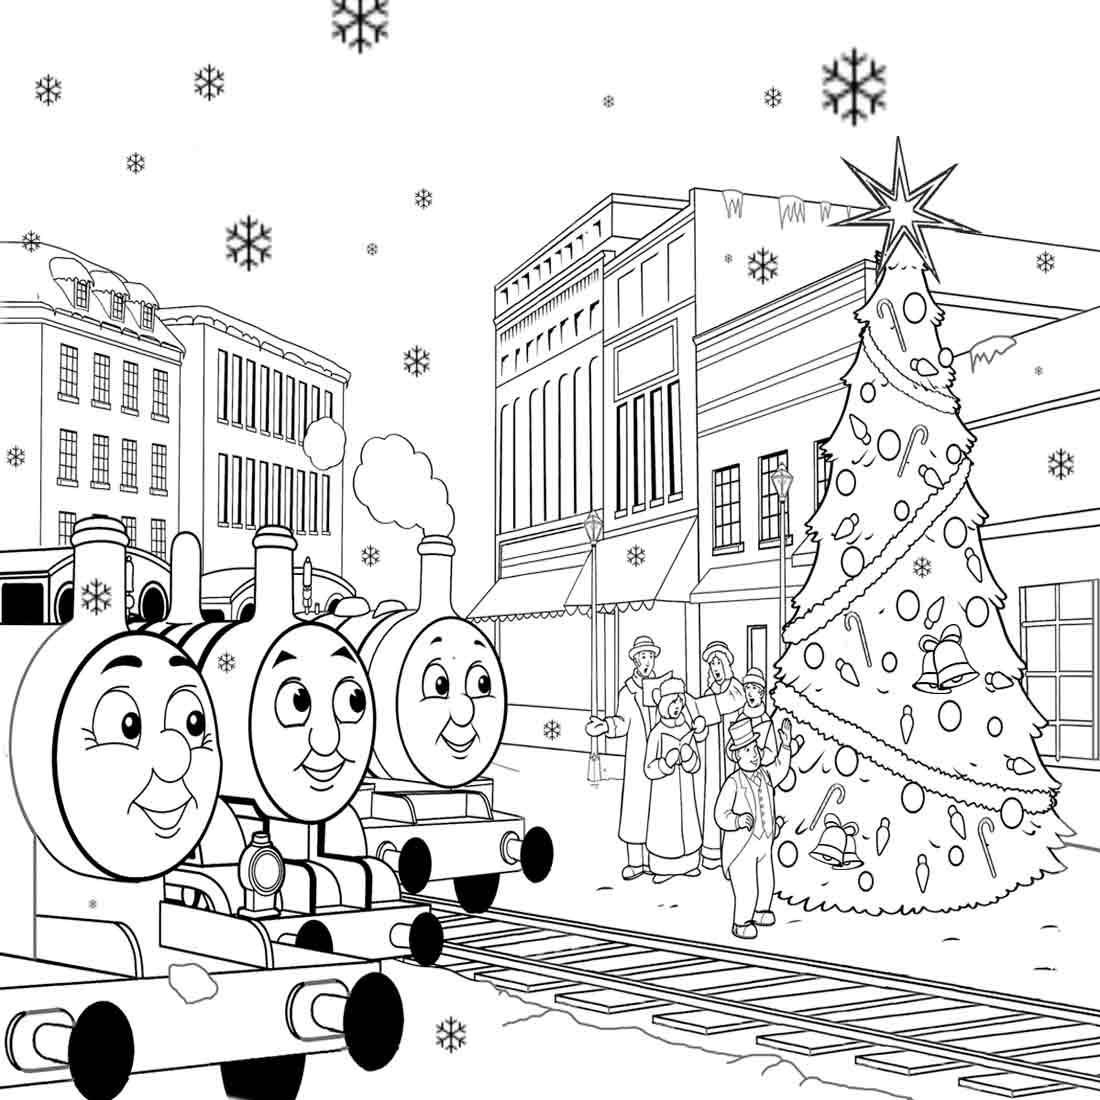 Coloring pages trains for kids - Thomas The Train Christmas Coloring Pages For Kids Thomas The